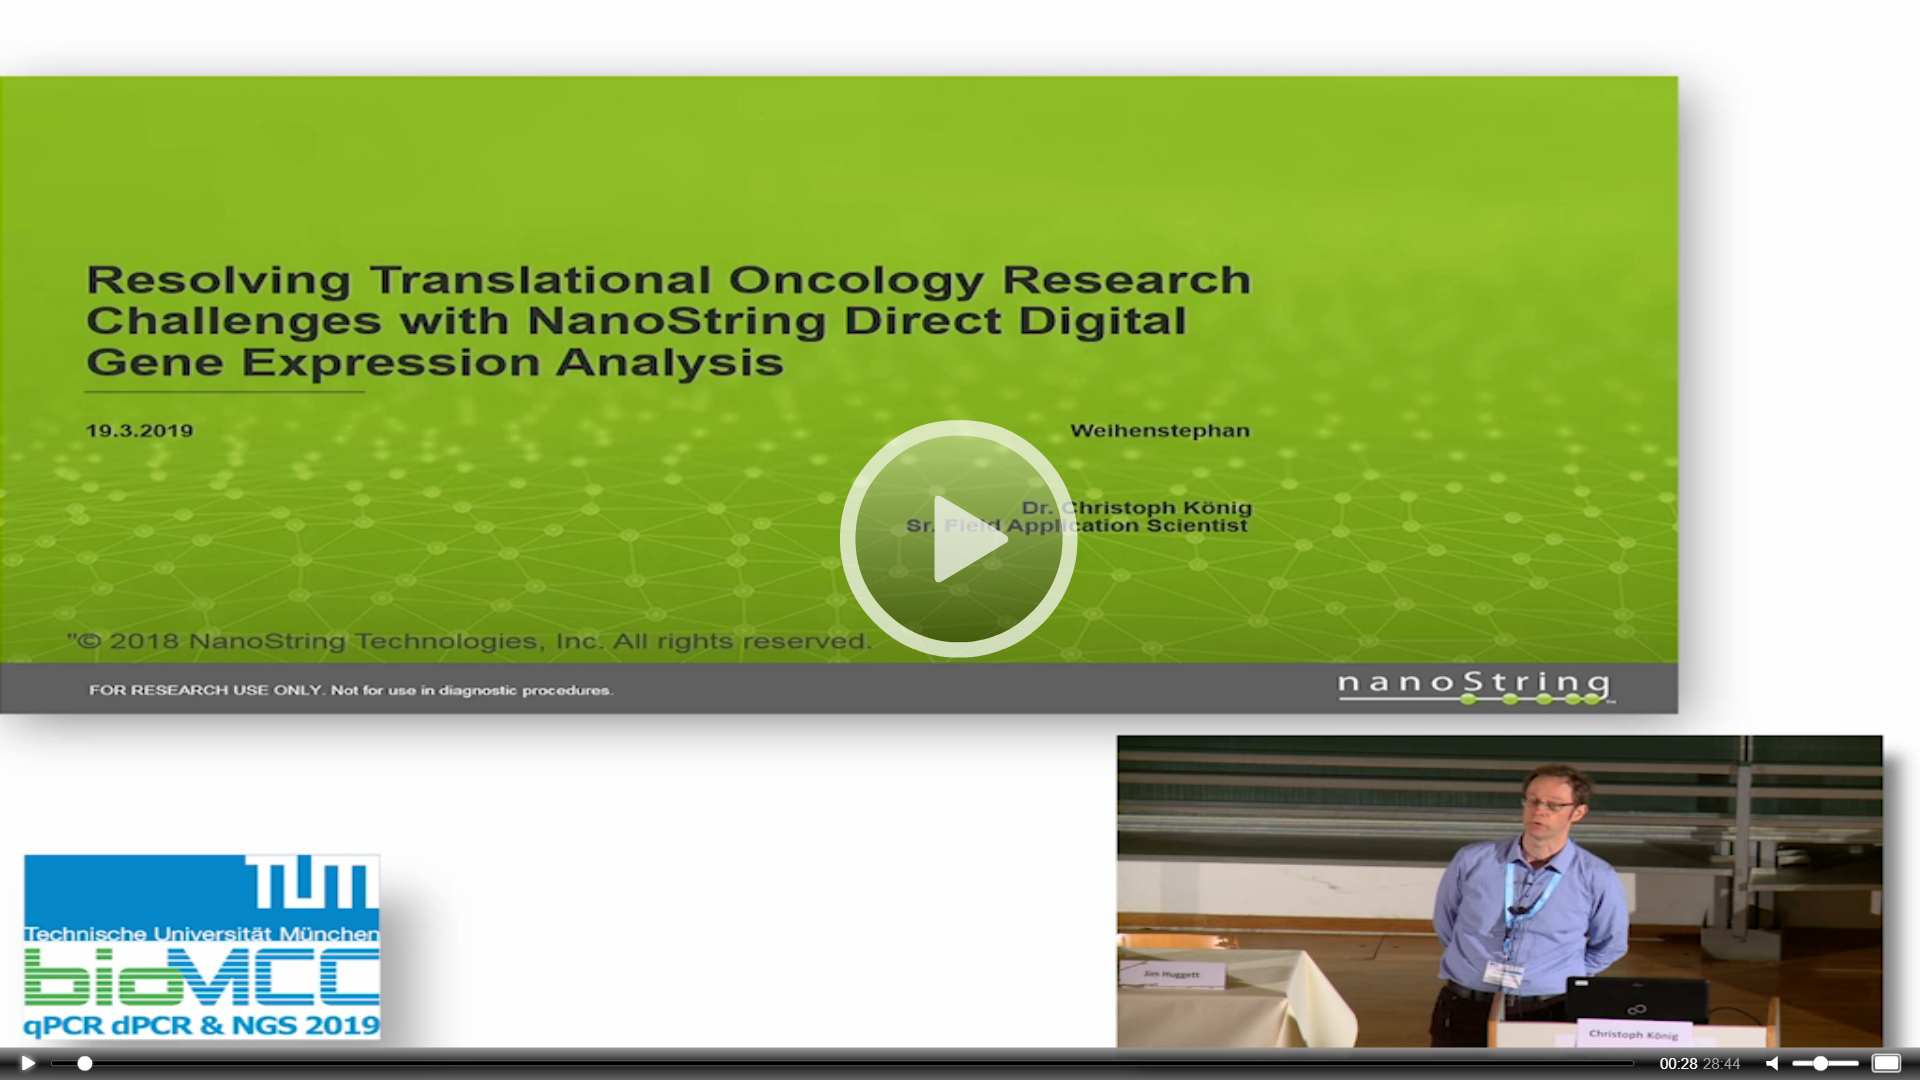 Resolving Translational Oncology Research Challenges with NanoString Direct Digital Gene Expression Analysis